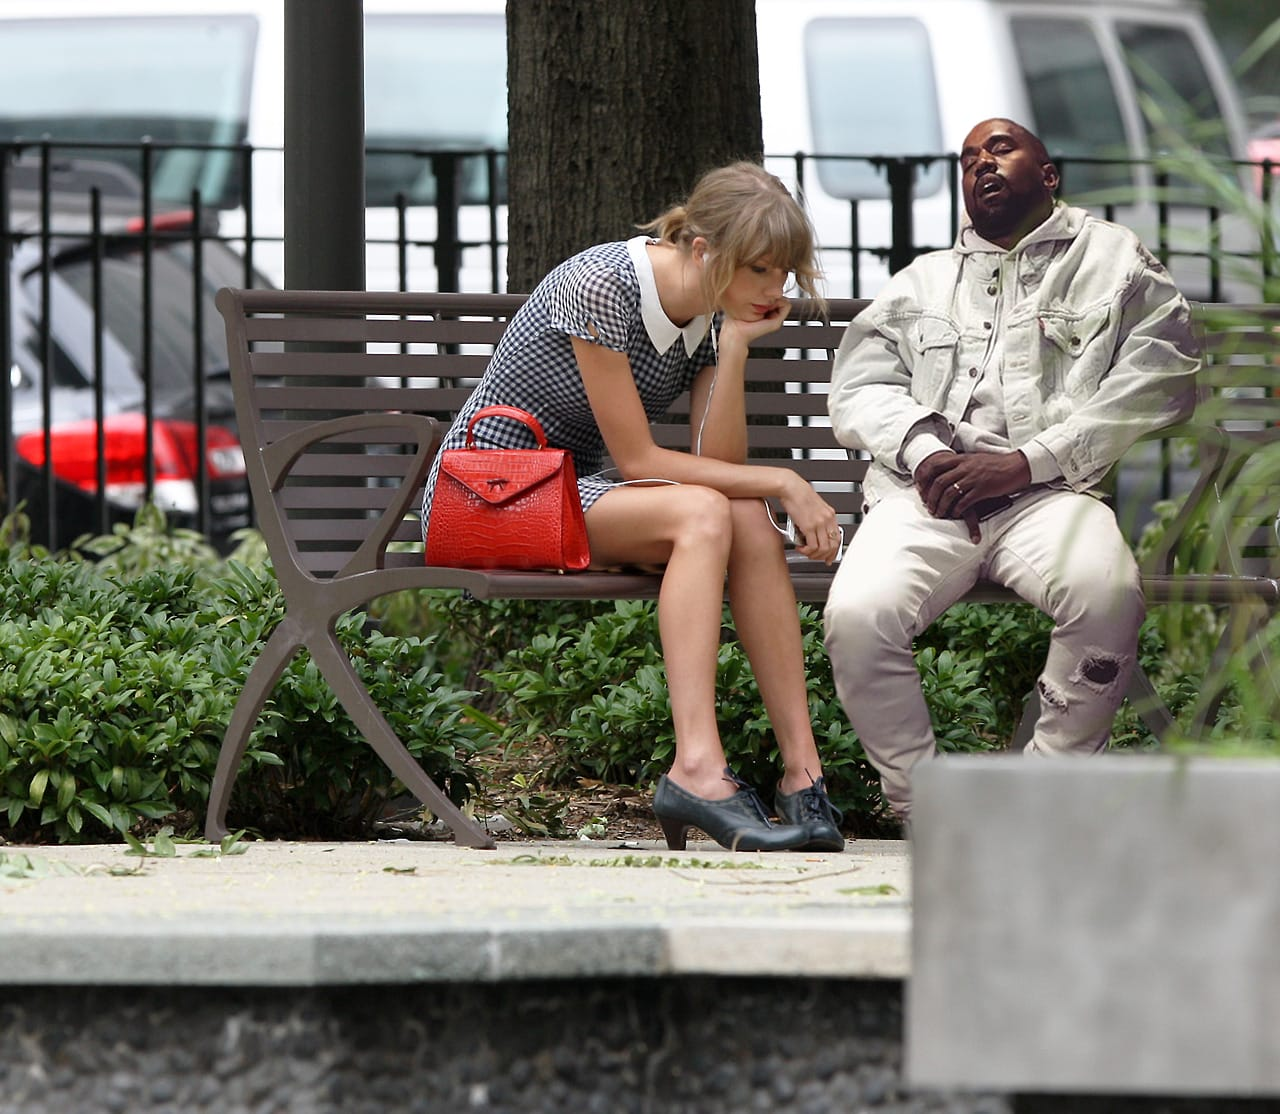 Sad Taylor and Sleepy Kanye